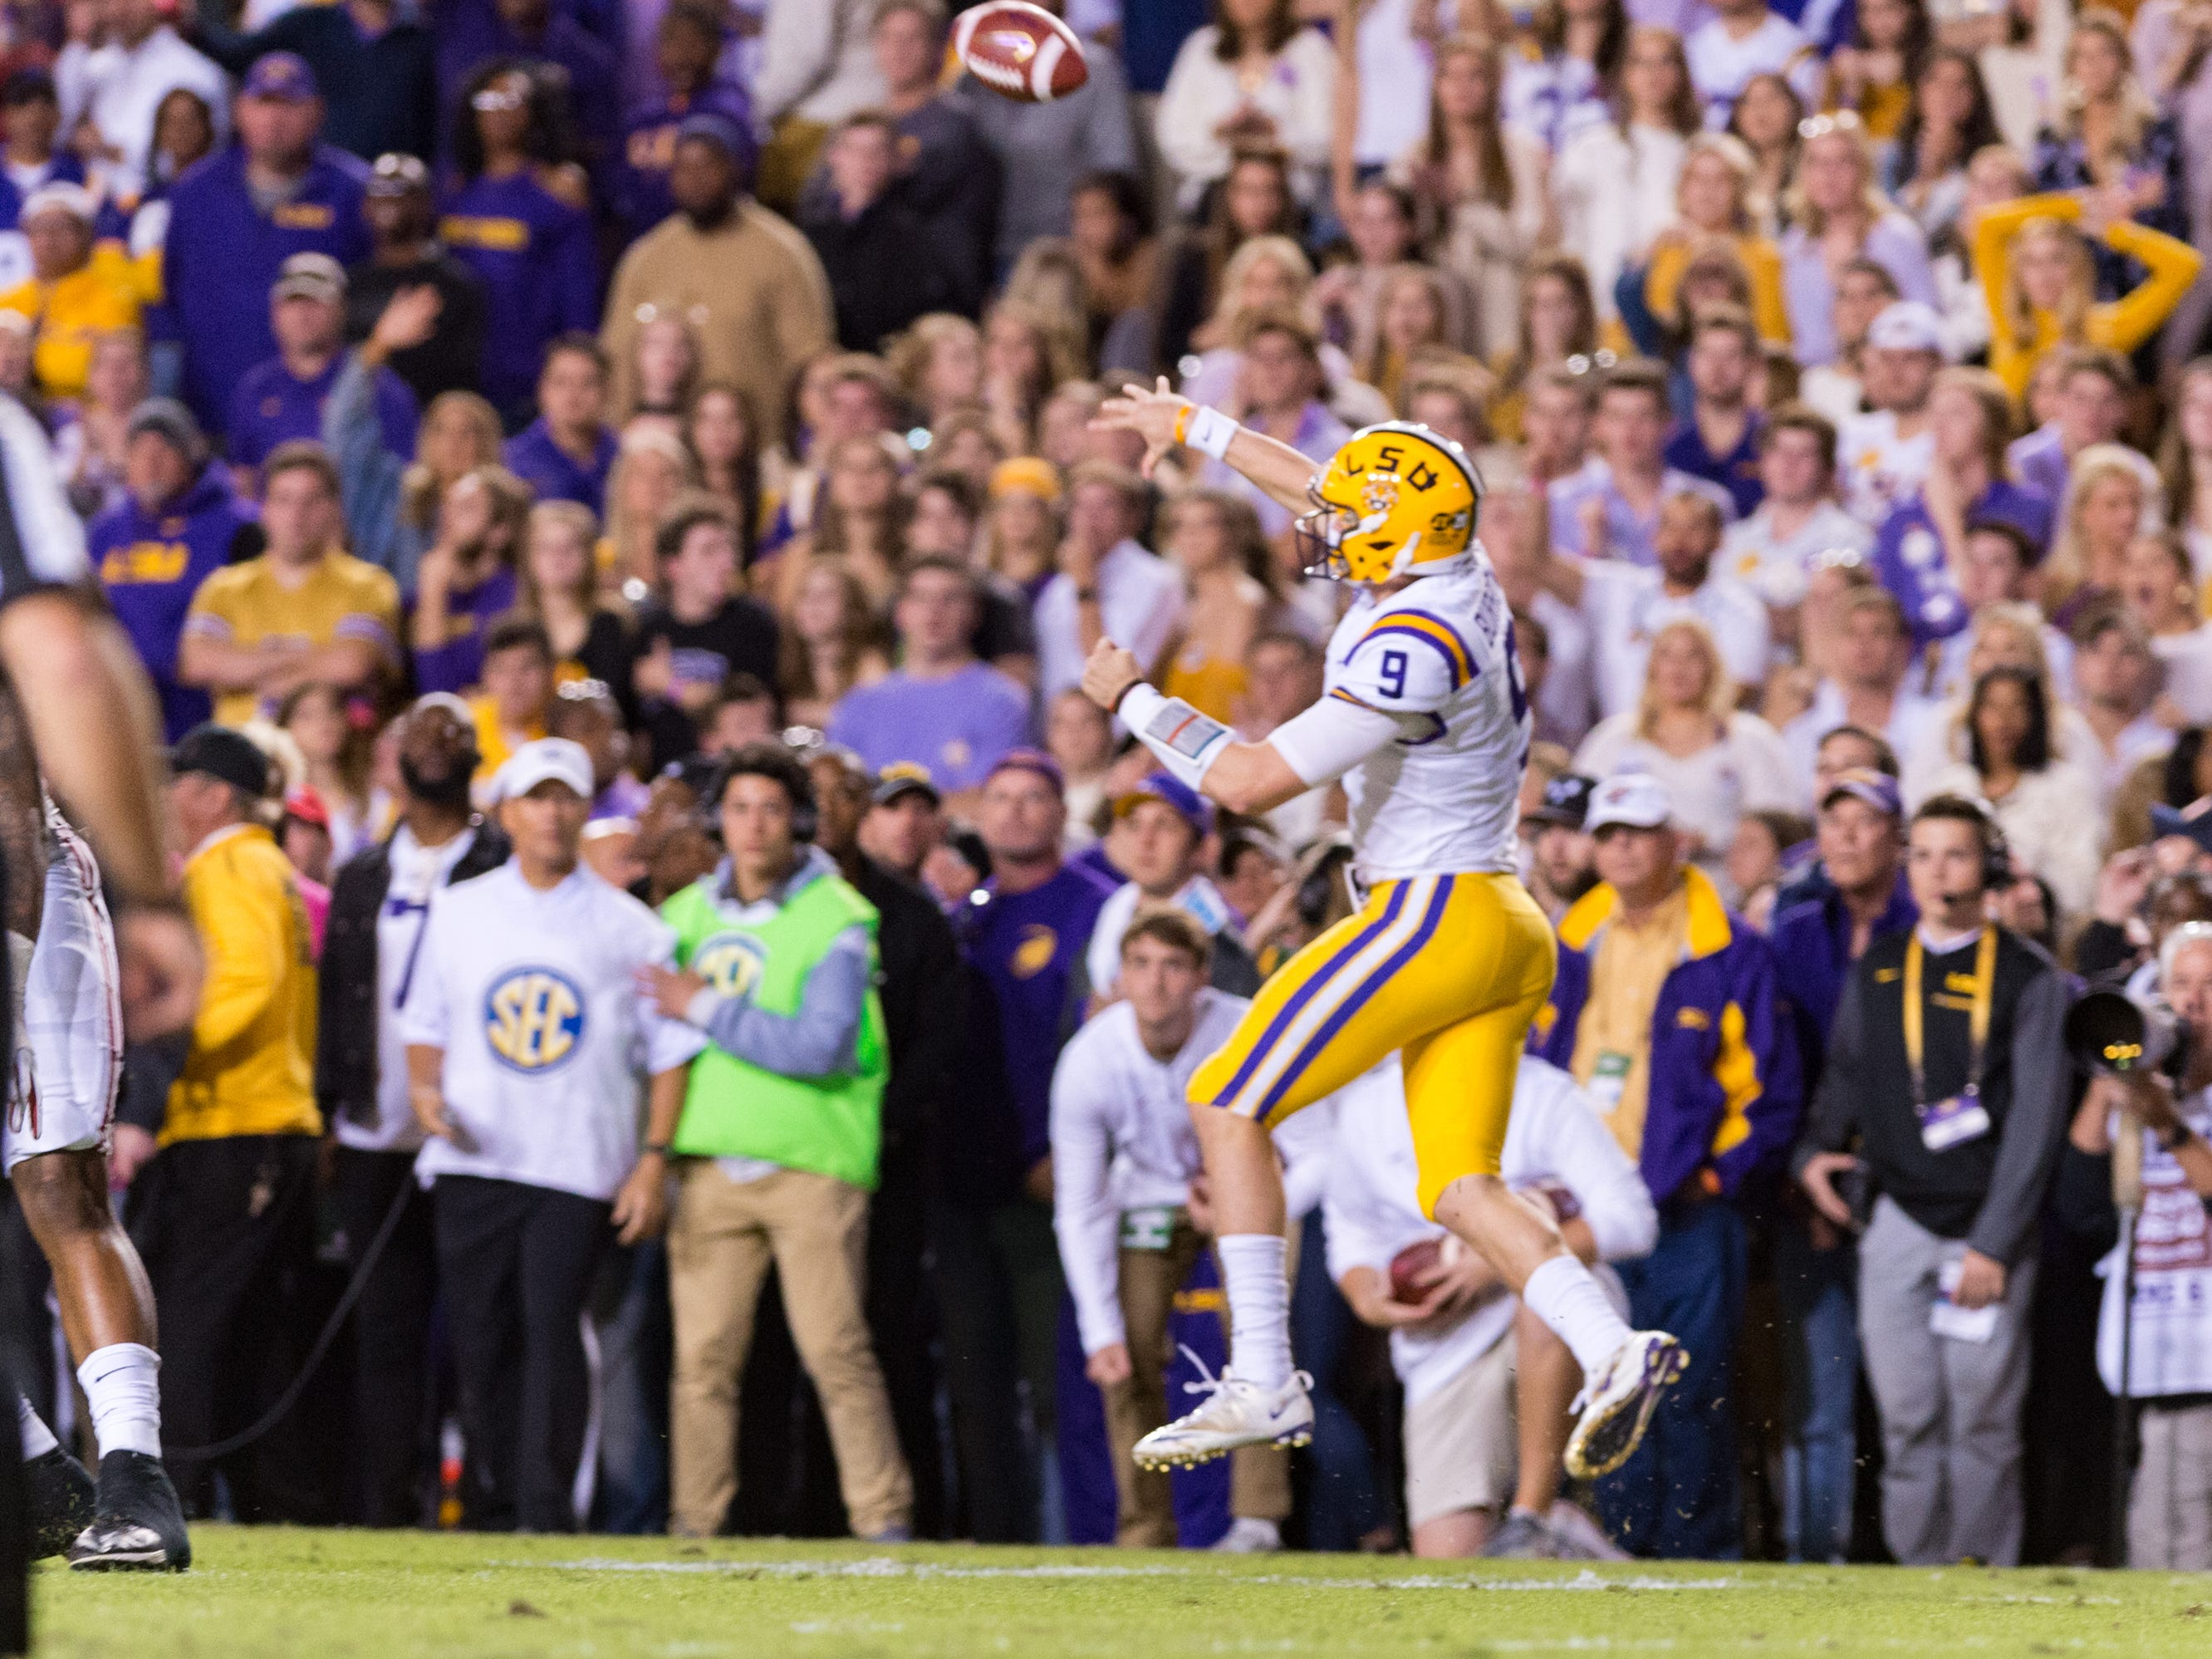 Tigers quarterback Joe Burrow throws a pass  as the No. 4-ranked LSU Tigers take on the No. 1  Alabama Crimson Tide in Tiger Stadium Saturday, Nov. 3, 2018.